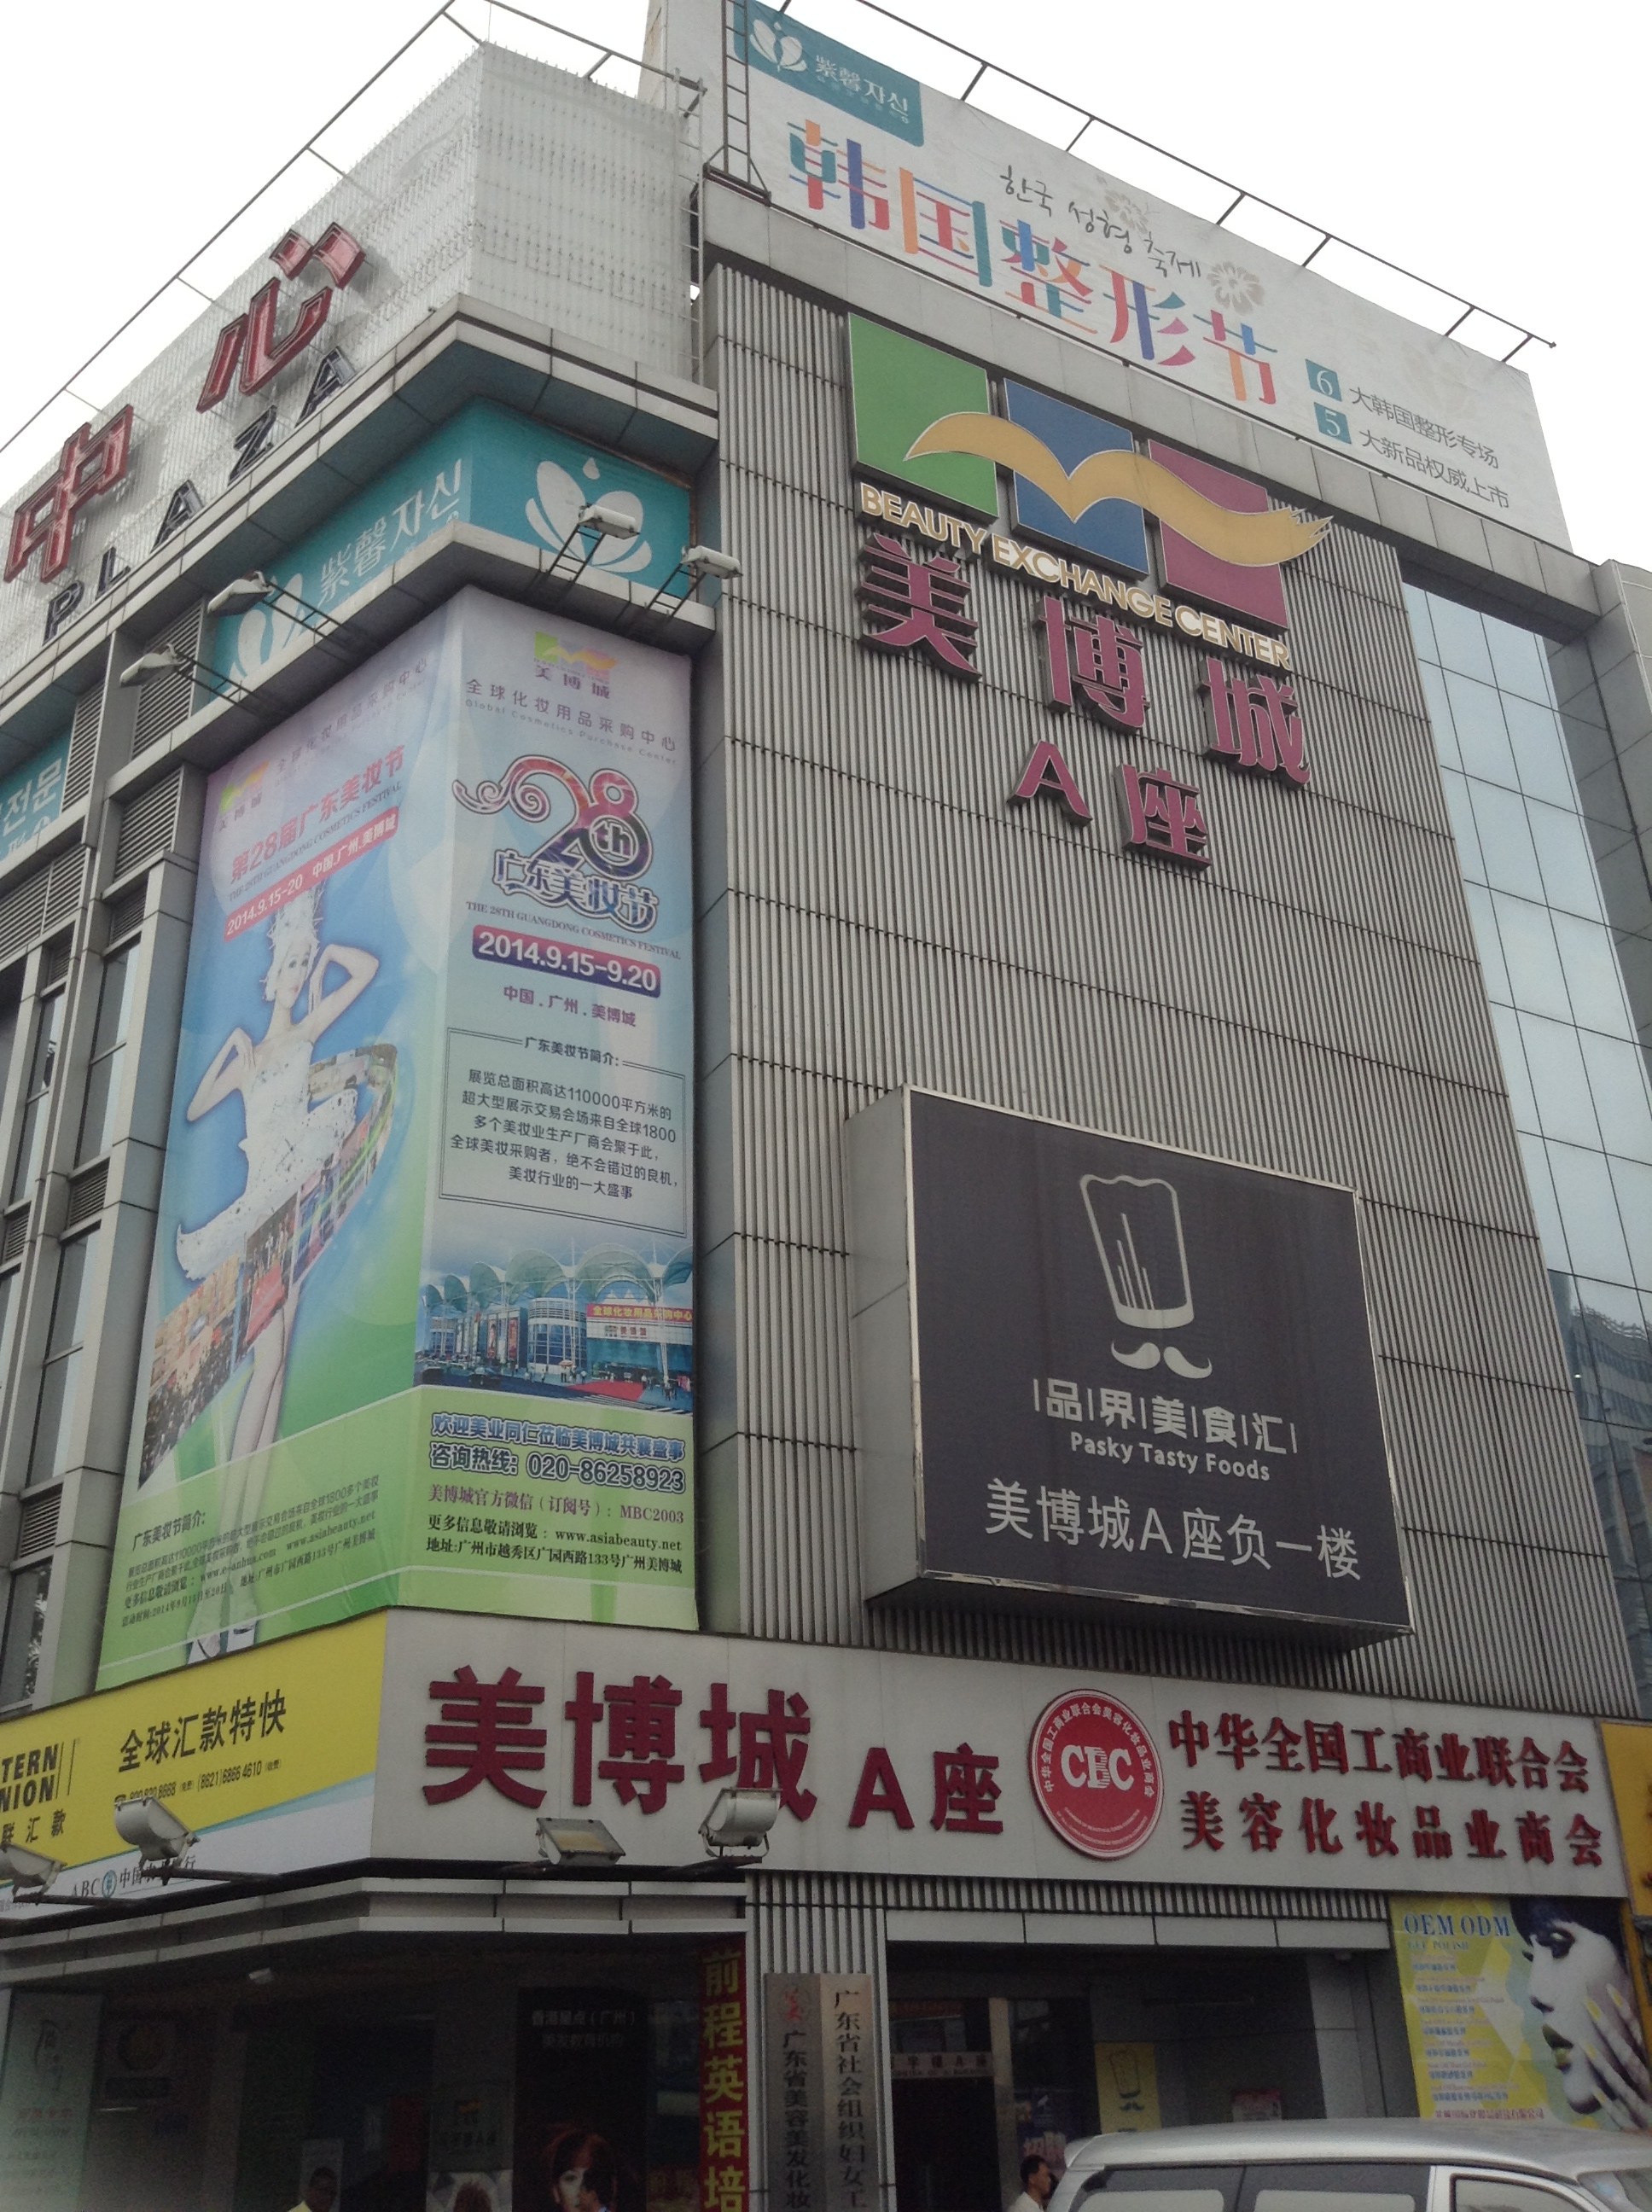 Building A of Guangzhou Beauty Exchange Center